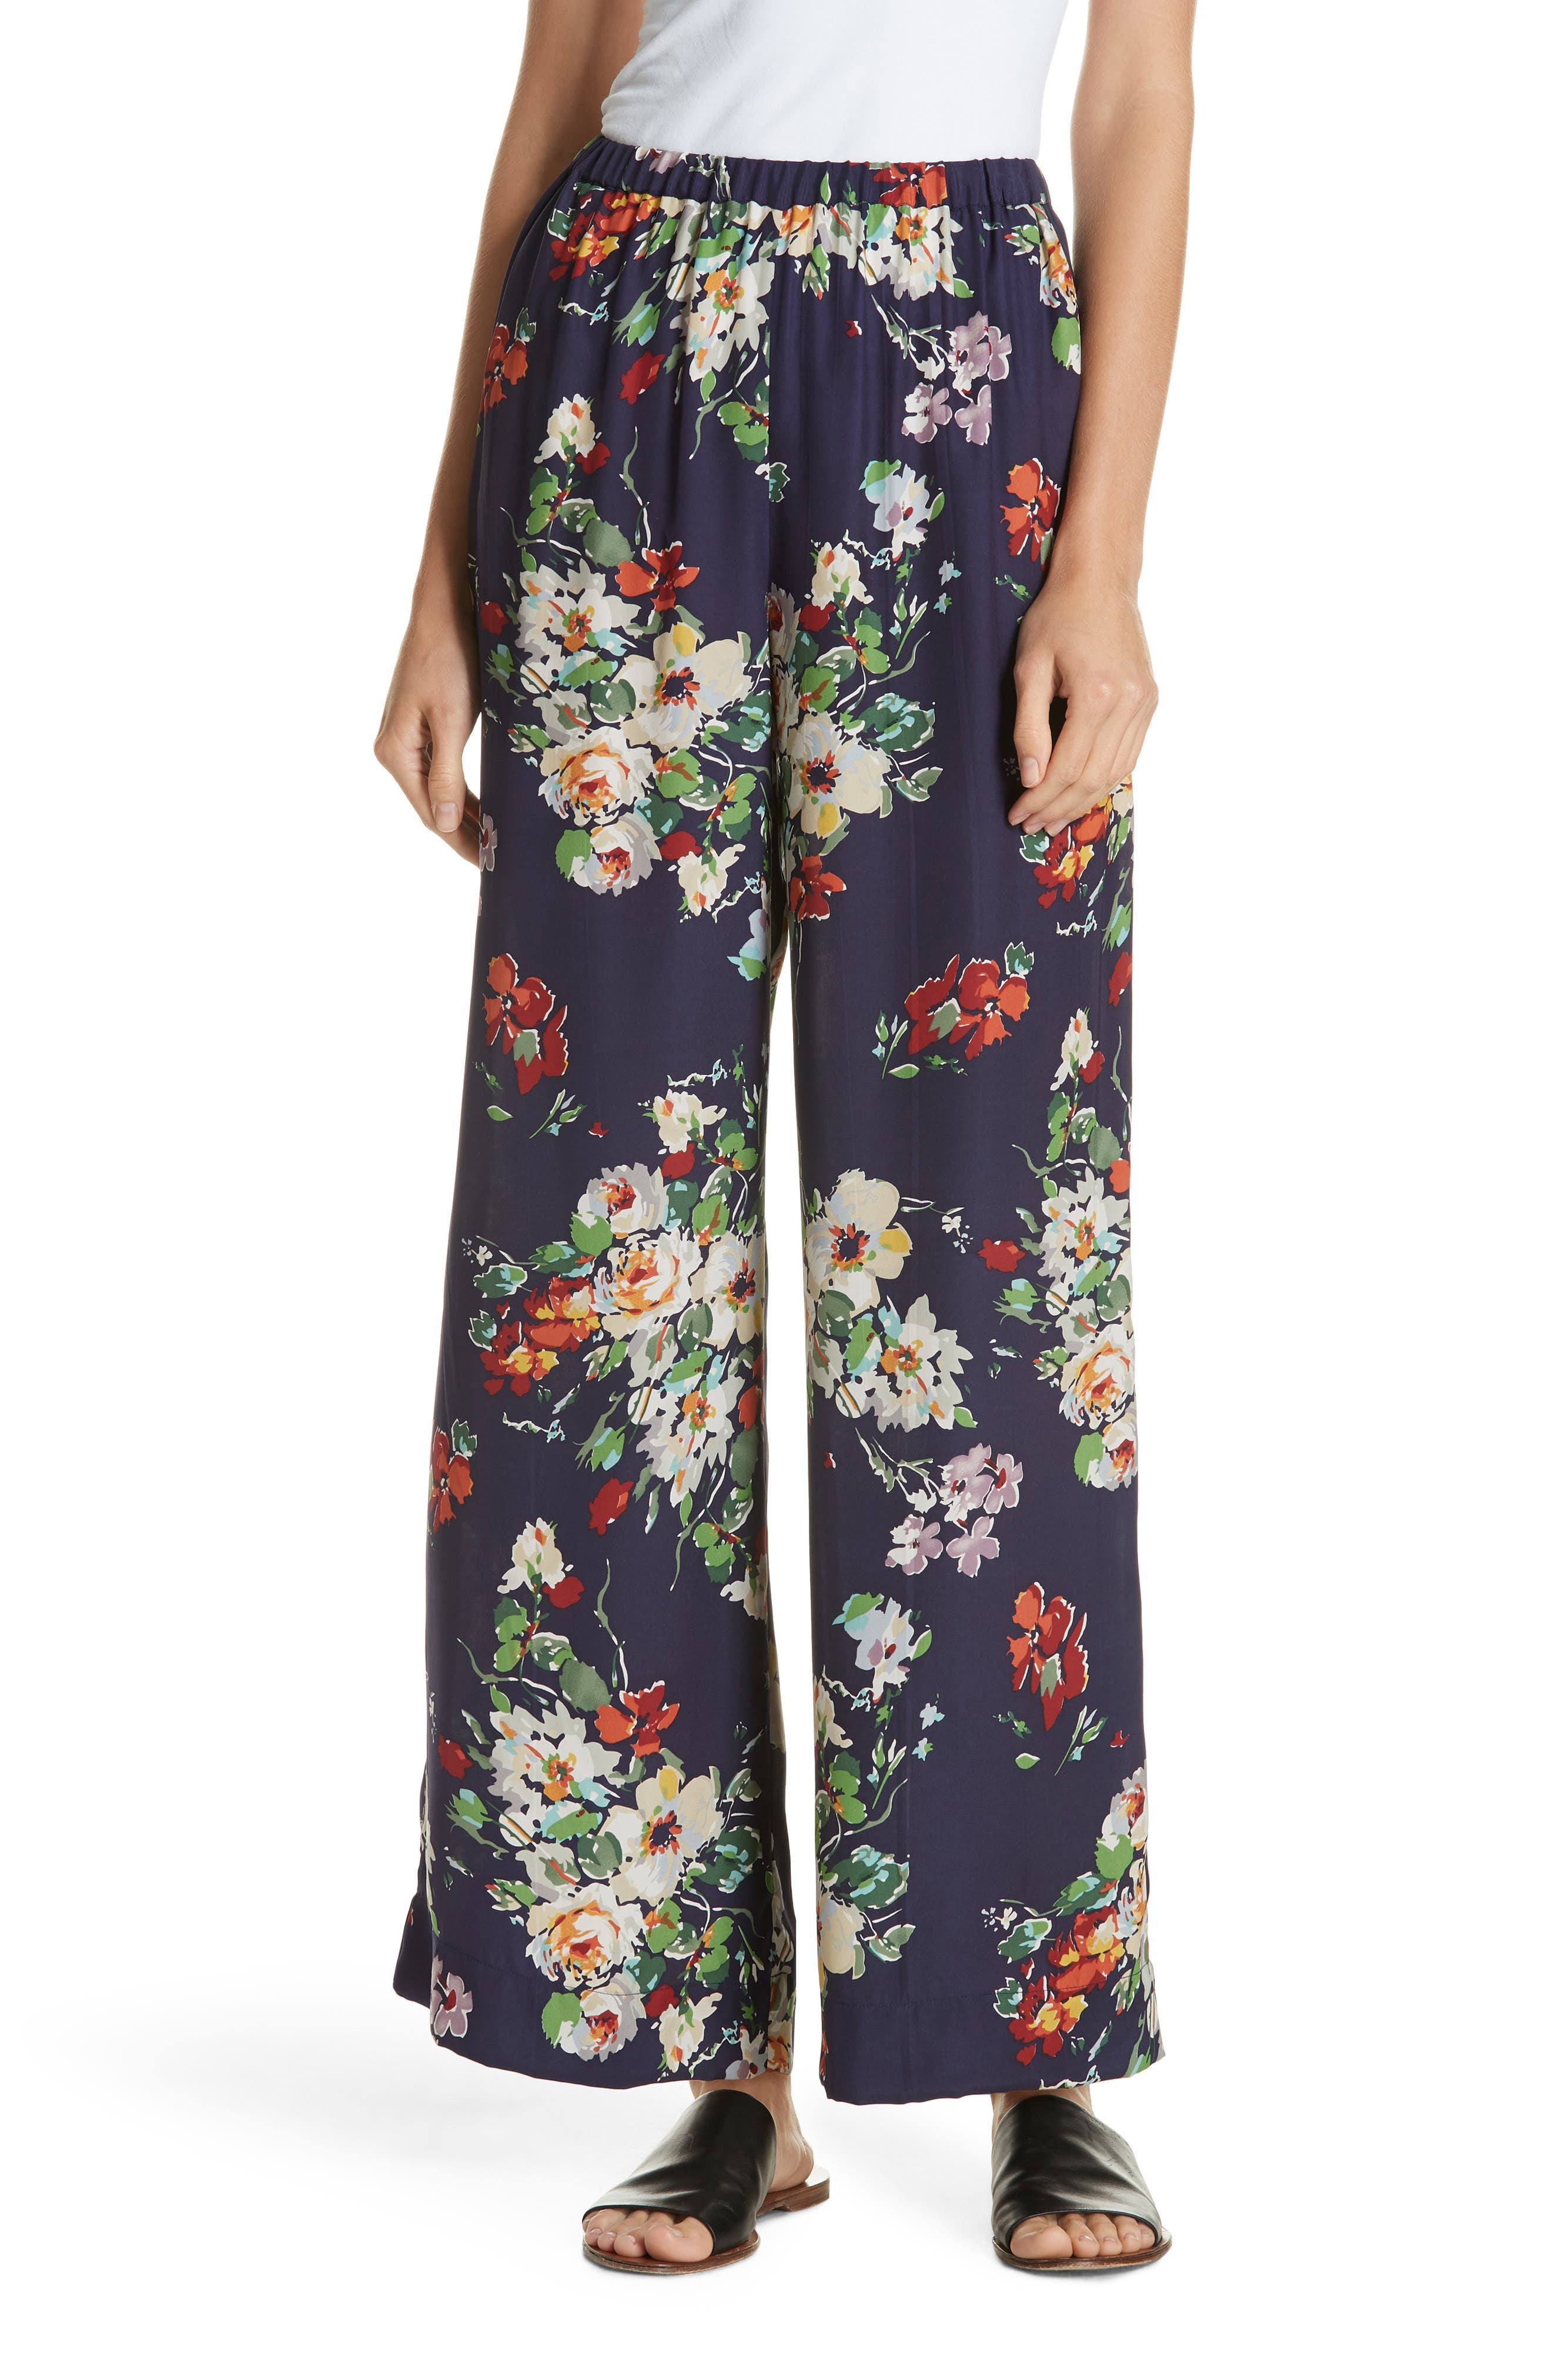 Chaplin Floral Silk Trousers,                         Main,                         color, NIGHTFALL FLORAL PRINT